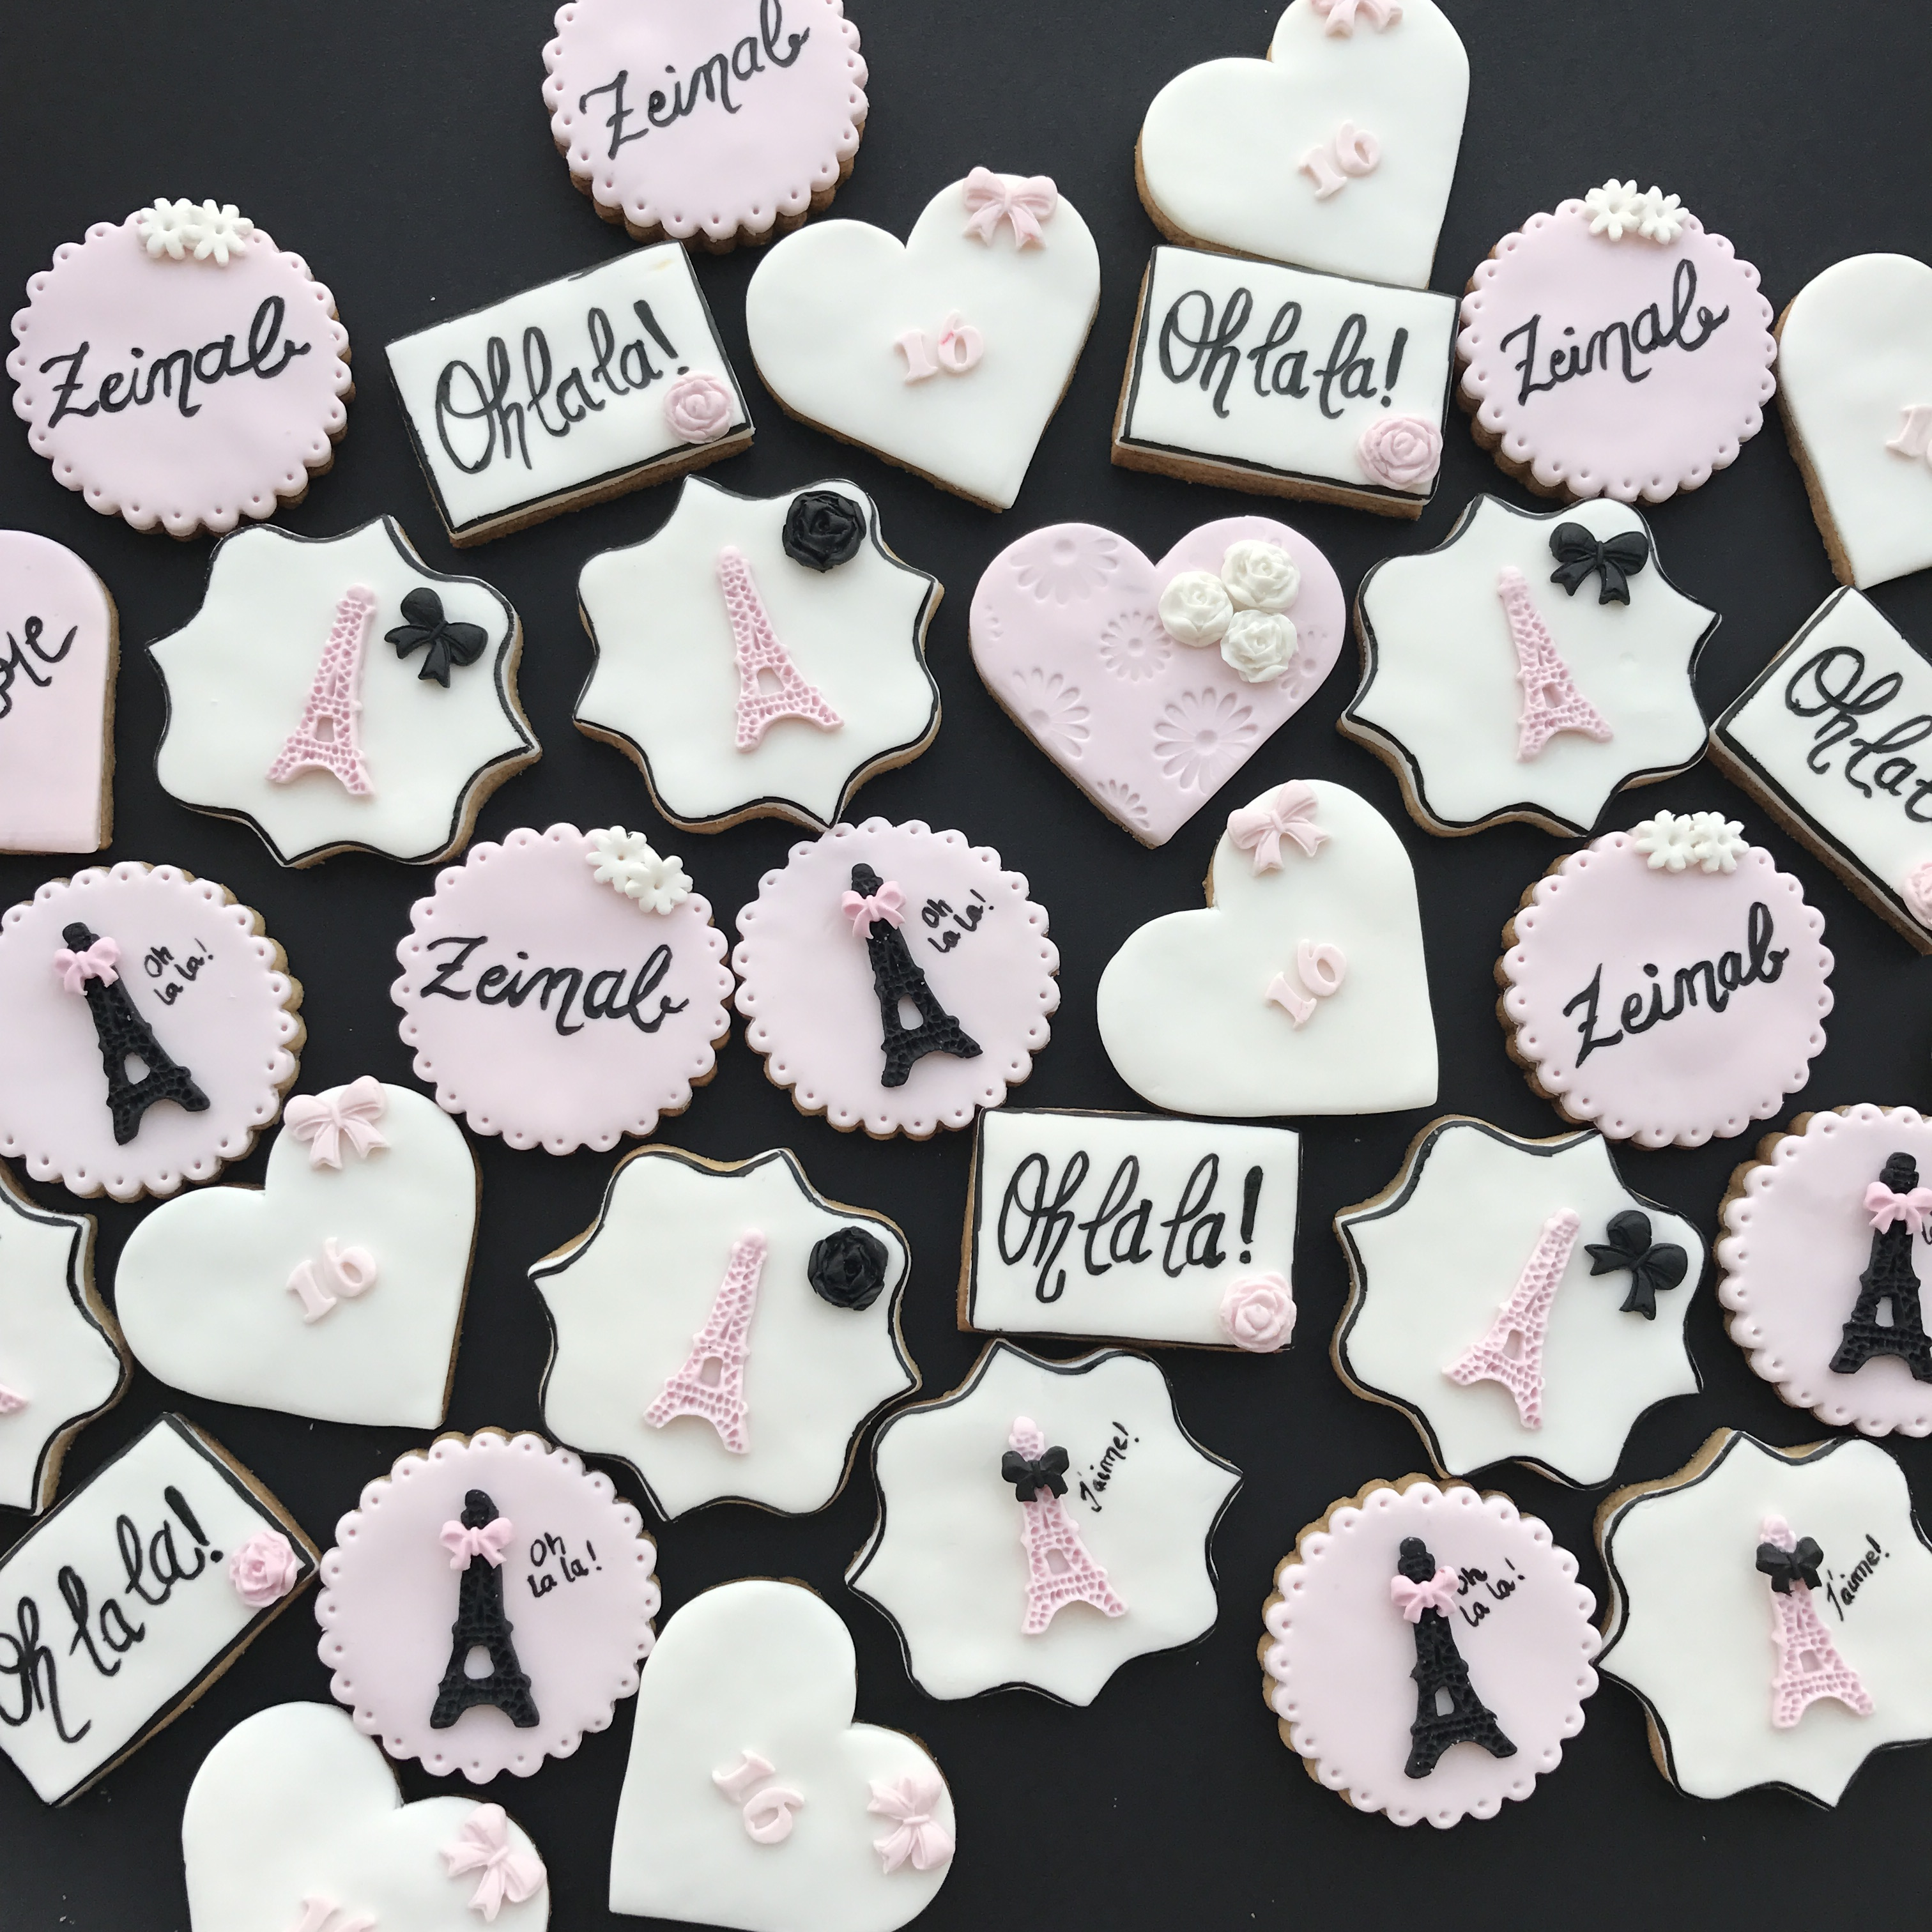 Parisian themed fondant cookies